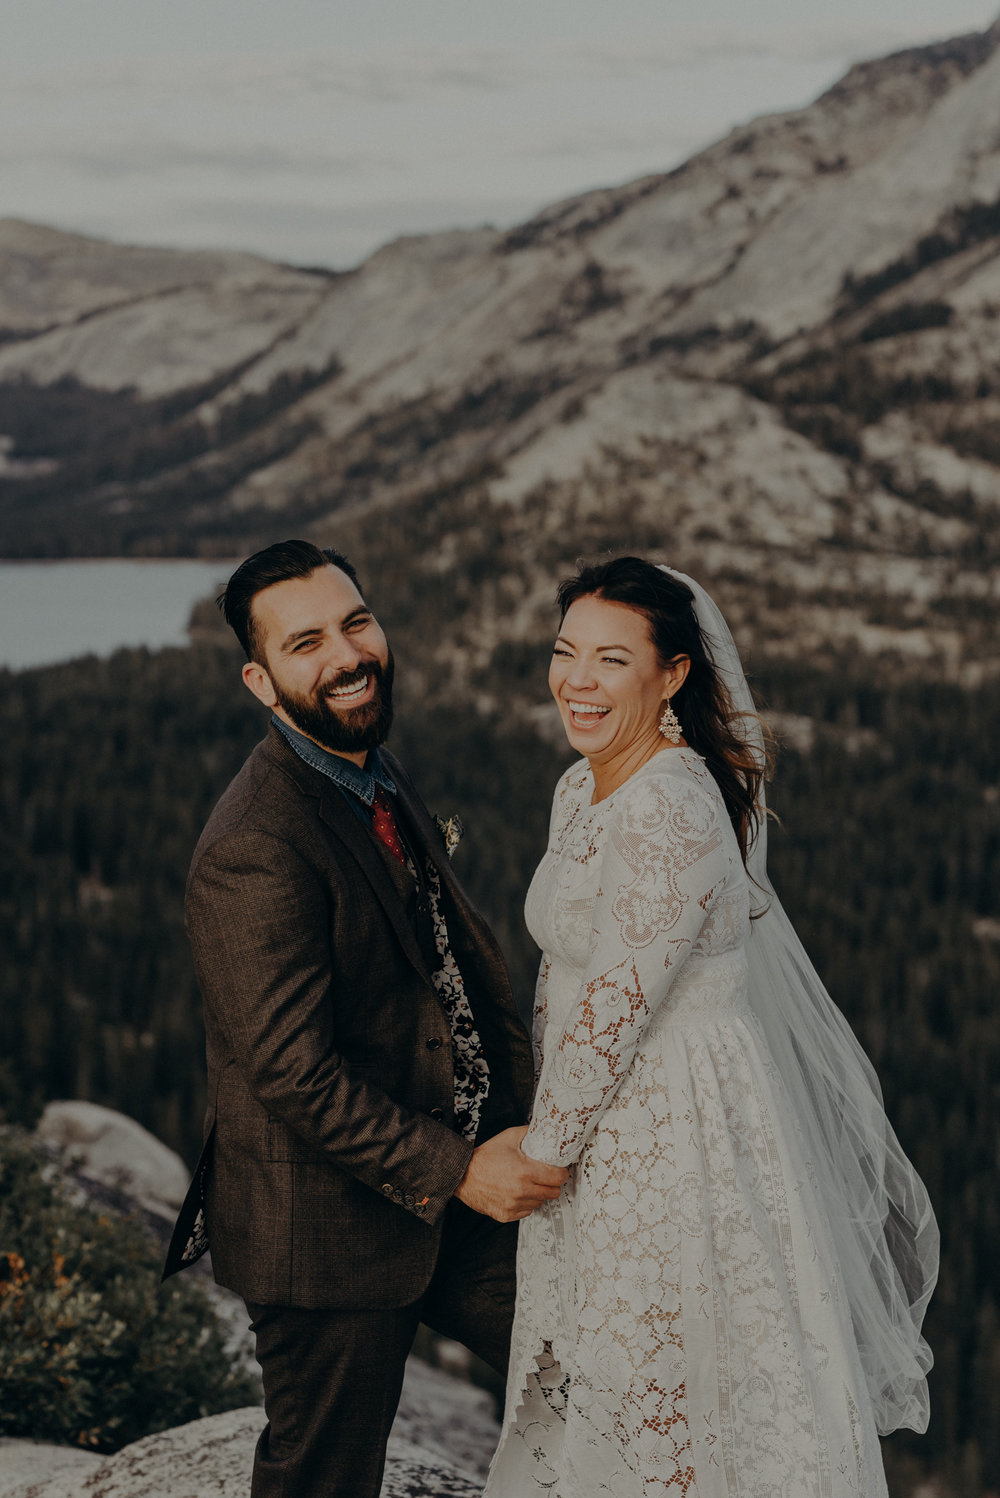 Yosemite Elopement Photographer - Evergreen Lodge Wedding Photographer - IsaiahAndTaylor.com-023.jpg